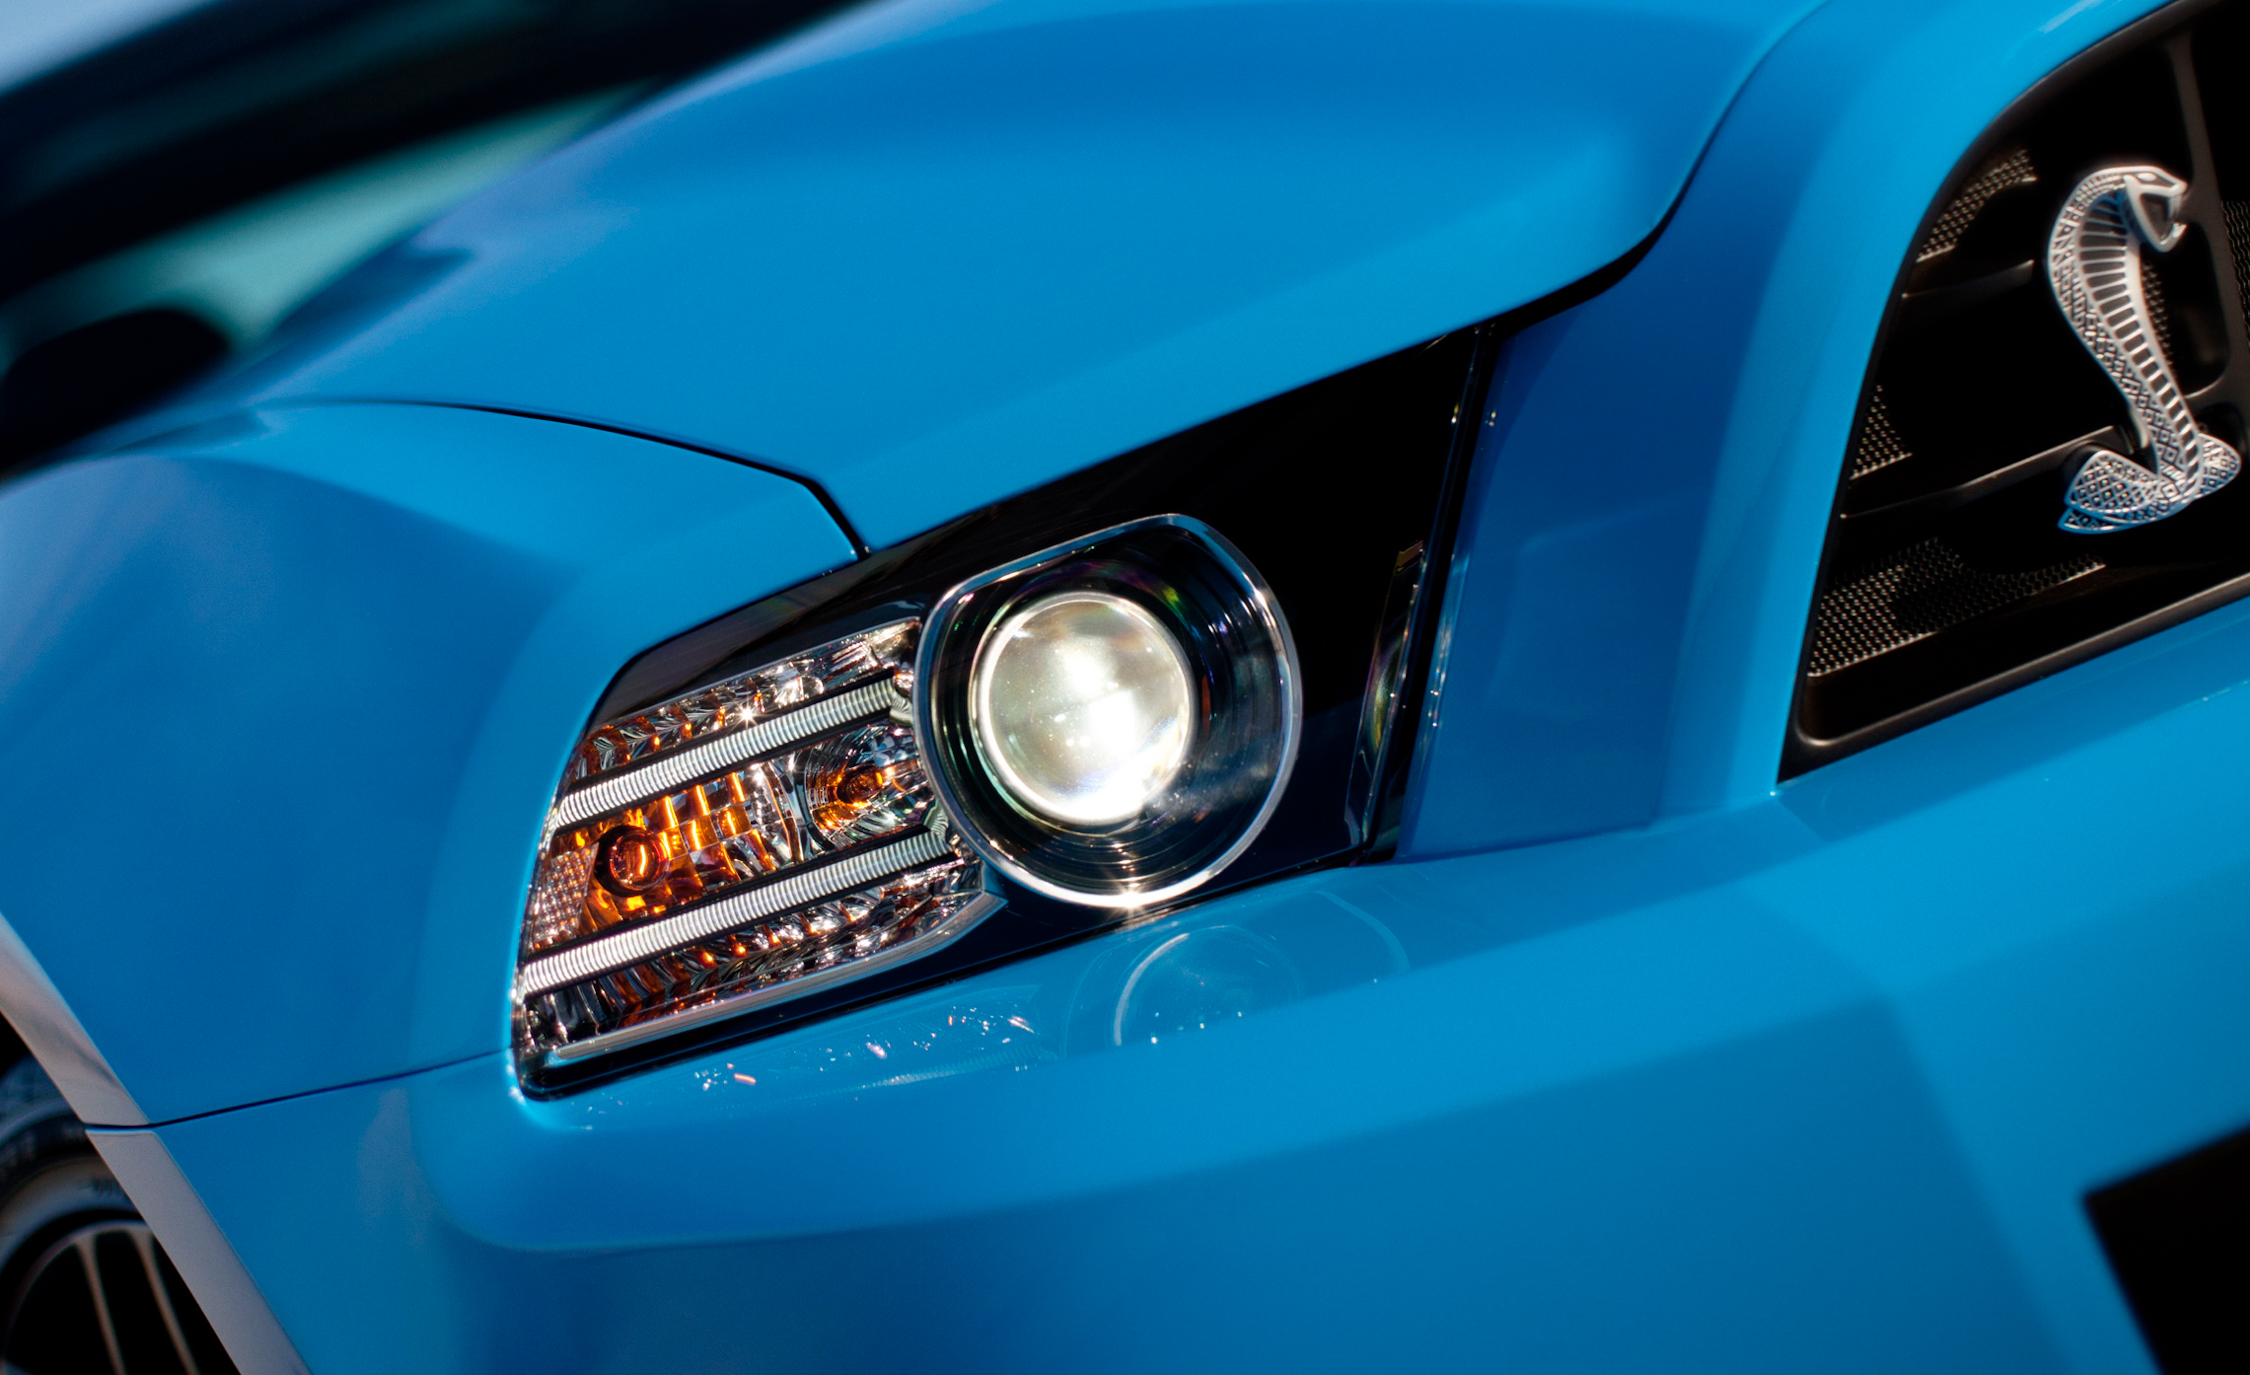 2013 Ford Mustang Shelby GT500 Blue Exterior View Headlight (Photo 6 of 47)